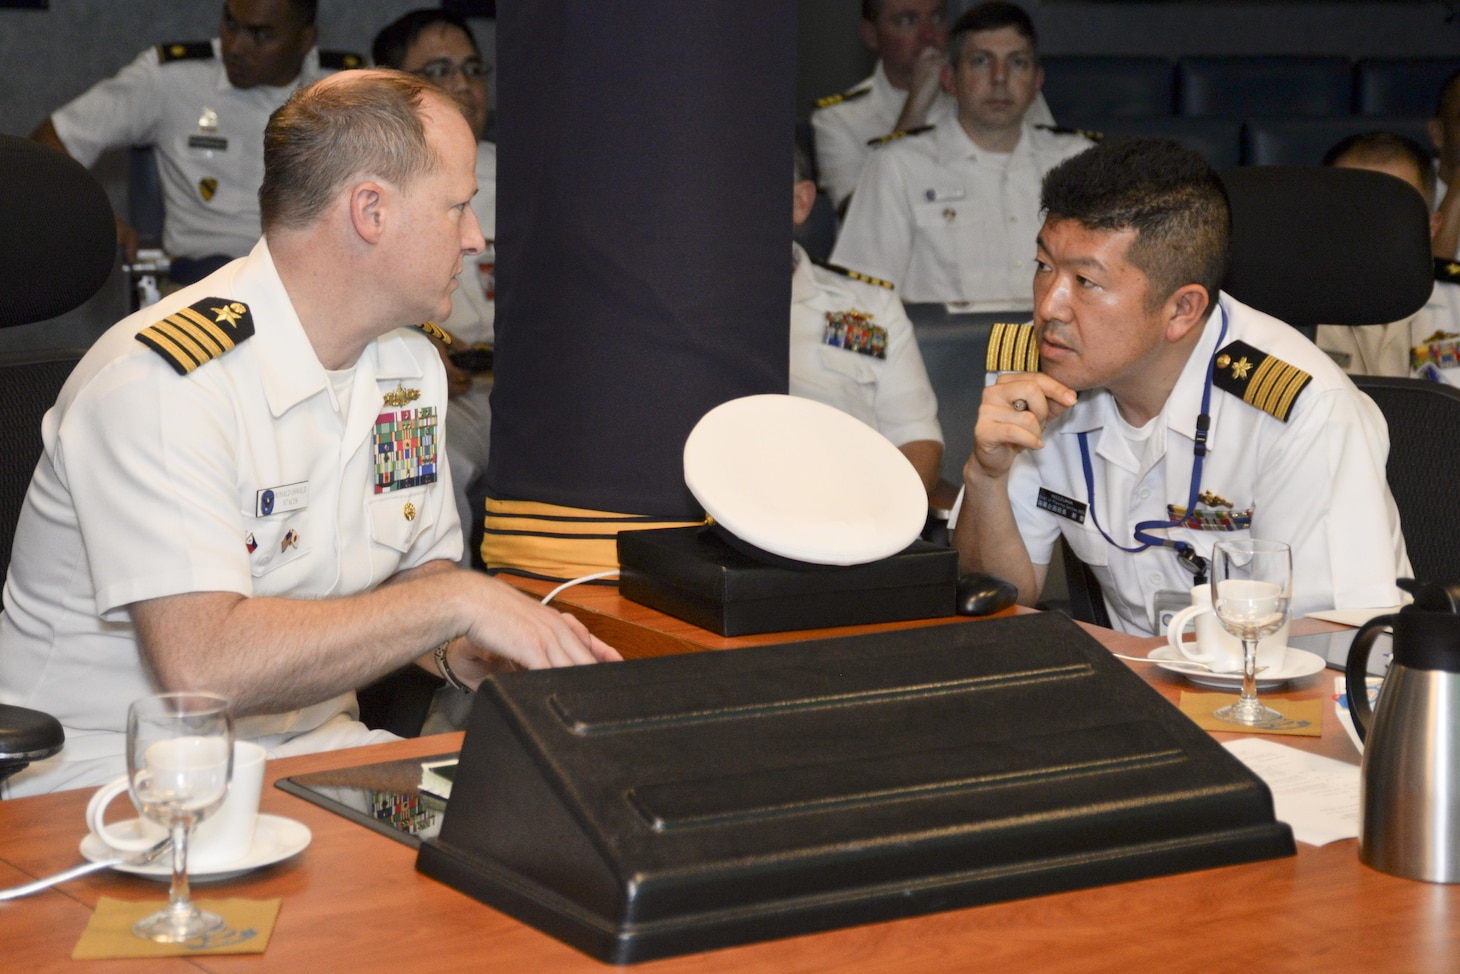 130305-N-CZ848-120 MANILA, Philippines (Mar. 5, 2016) – Captain Ron Oswald, left, and Capt. Tsugunori Niizuma of the Japan Maritime Self-Defense Force, have a conversation during trilateral talks between the U.S., Philippines and Japan aboard USS Blue Ridge (LCC 19), in Manila, Philippines. The trilateral talks are being held to enhance cooperation and strengthen relationships to best provide security and stability in the Indo-Asia Pacific. (U.S. Navy photo by Mass Communication Specialist 2nd Class Jason Kofonow/Released)